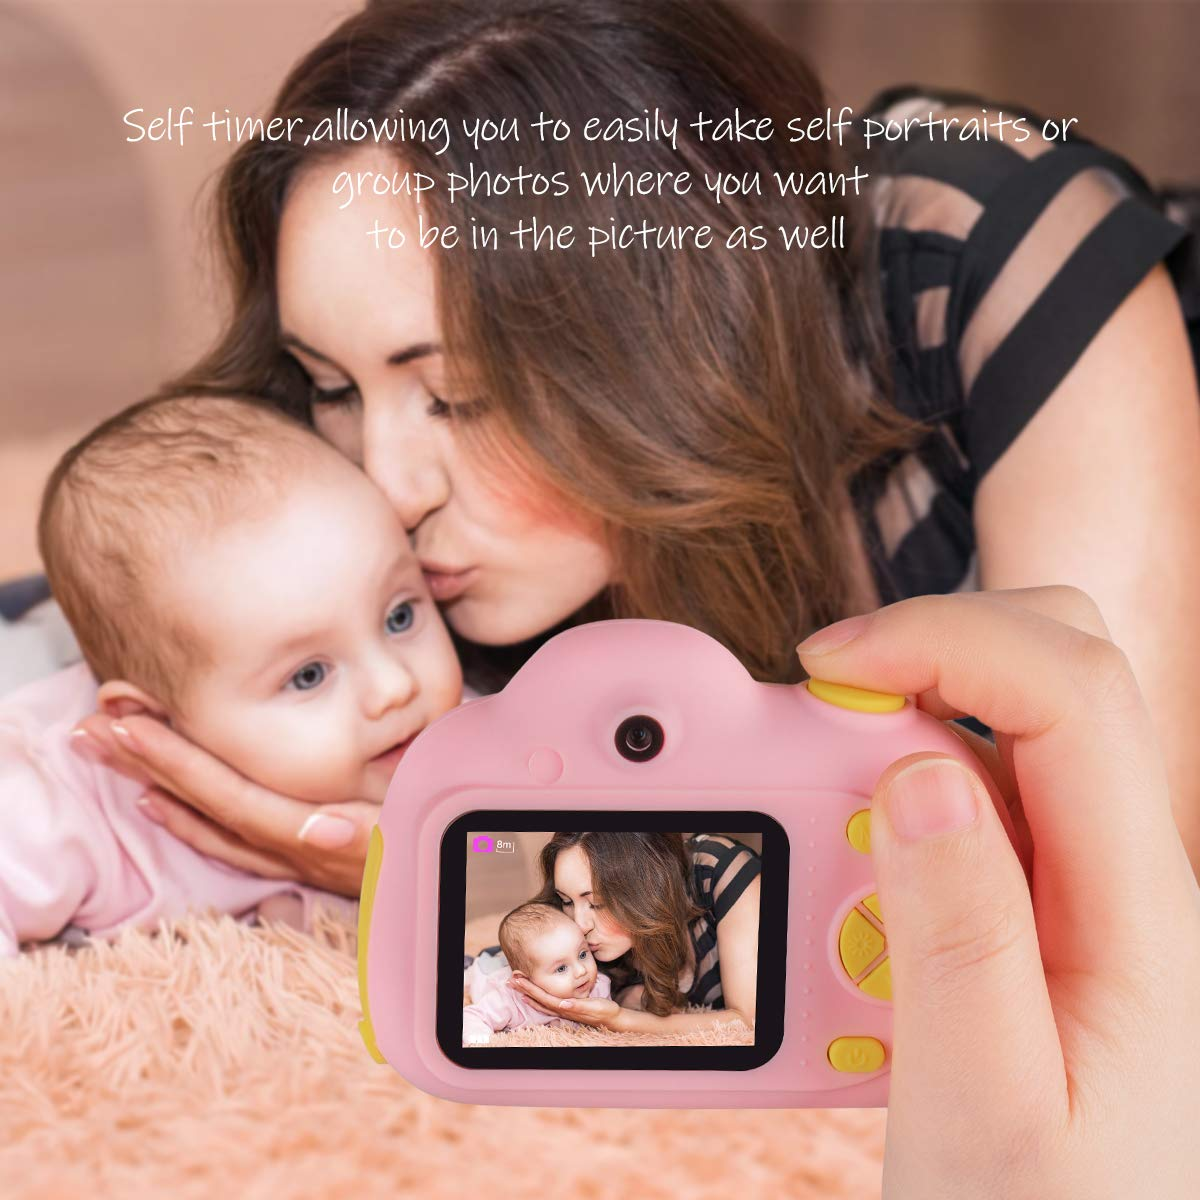 Kids Cameras Dual Selfie Digital Camera HD Video Recorder Action Camera Camcorder for 4-9 Year Old Kids Birthday Festival Gifts Toys for Children Boys Girls 2.0'' LCD Screen 4X Digital Zoom (Pink) by Tyhbelle (Image #4)